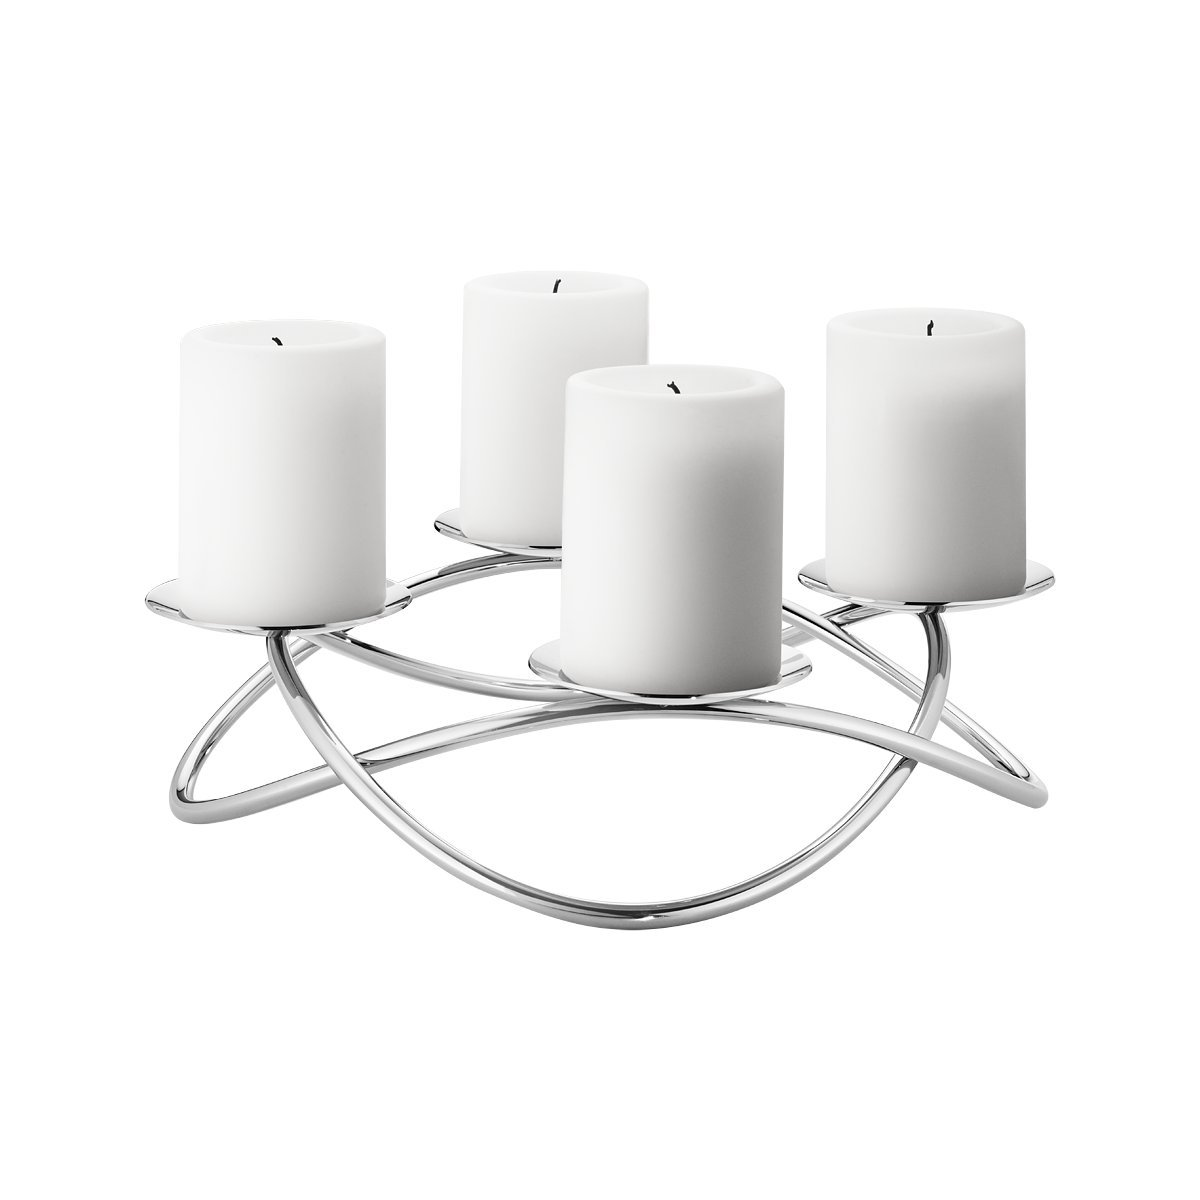 Georg Jensen Season Grand Candle Holder, Mirror Polished Stainless Steel, large 3586431